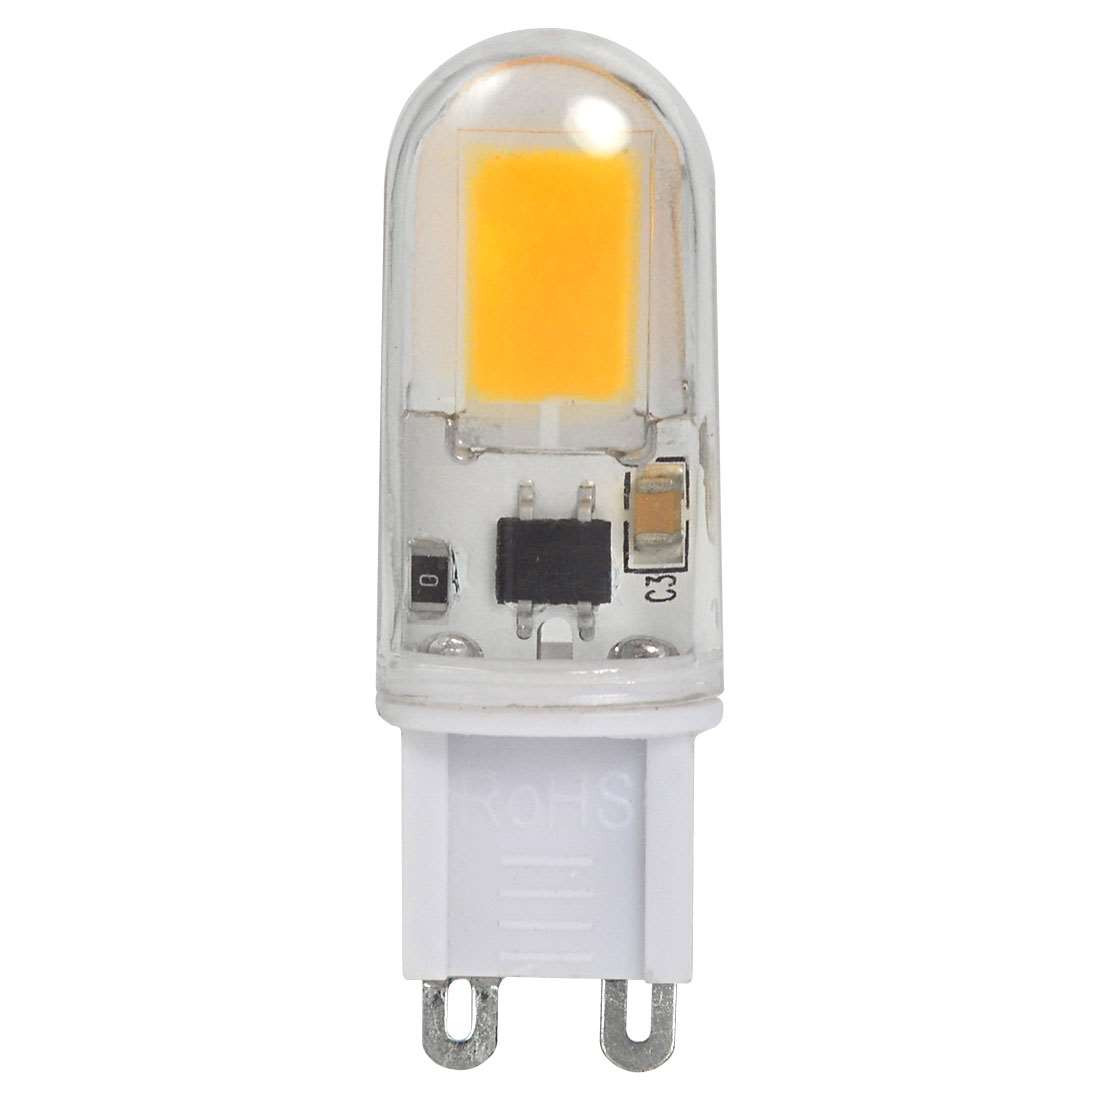 g9 4w led light cob with acrylic material led bulb lamp ac 220 240v in warm white energy saving. Black Bedroom Furniture Sets. Home Design Ideas